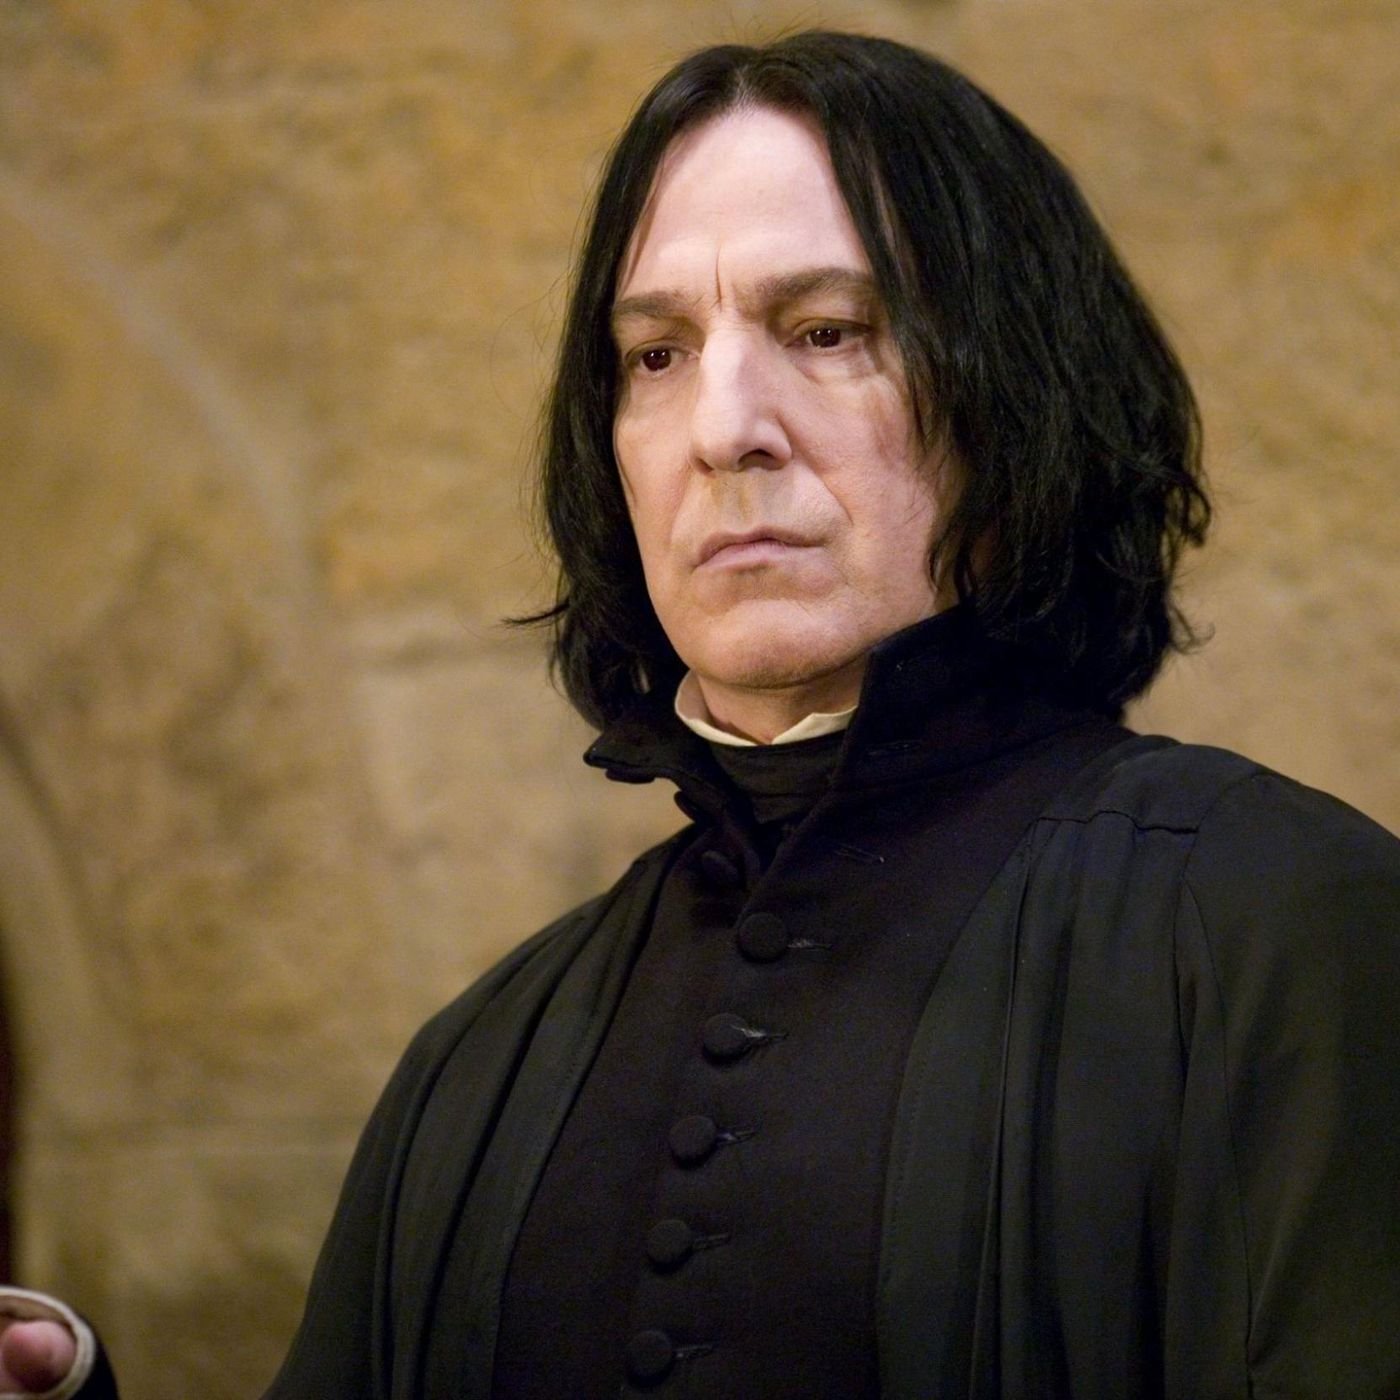 J K  Rowling has apologized for killing Professor Snape 10 years